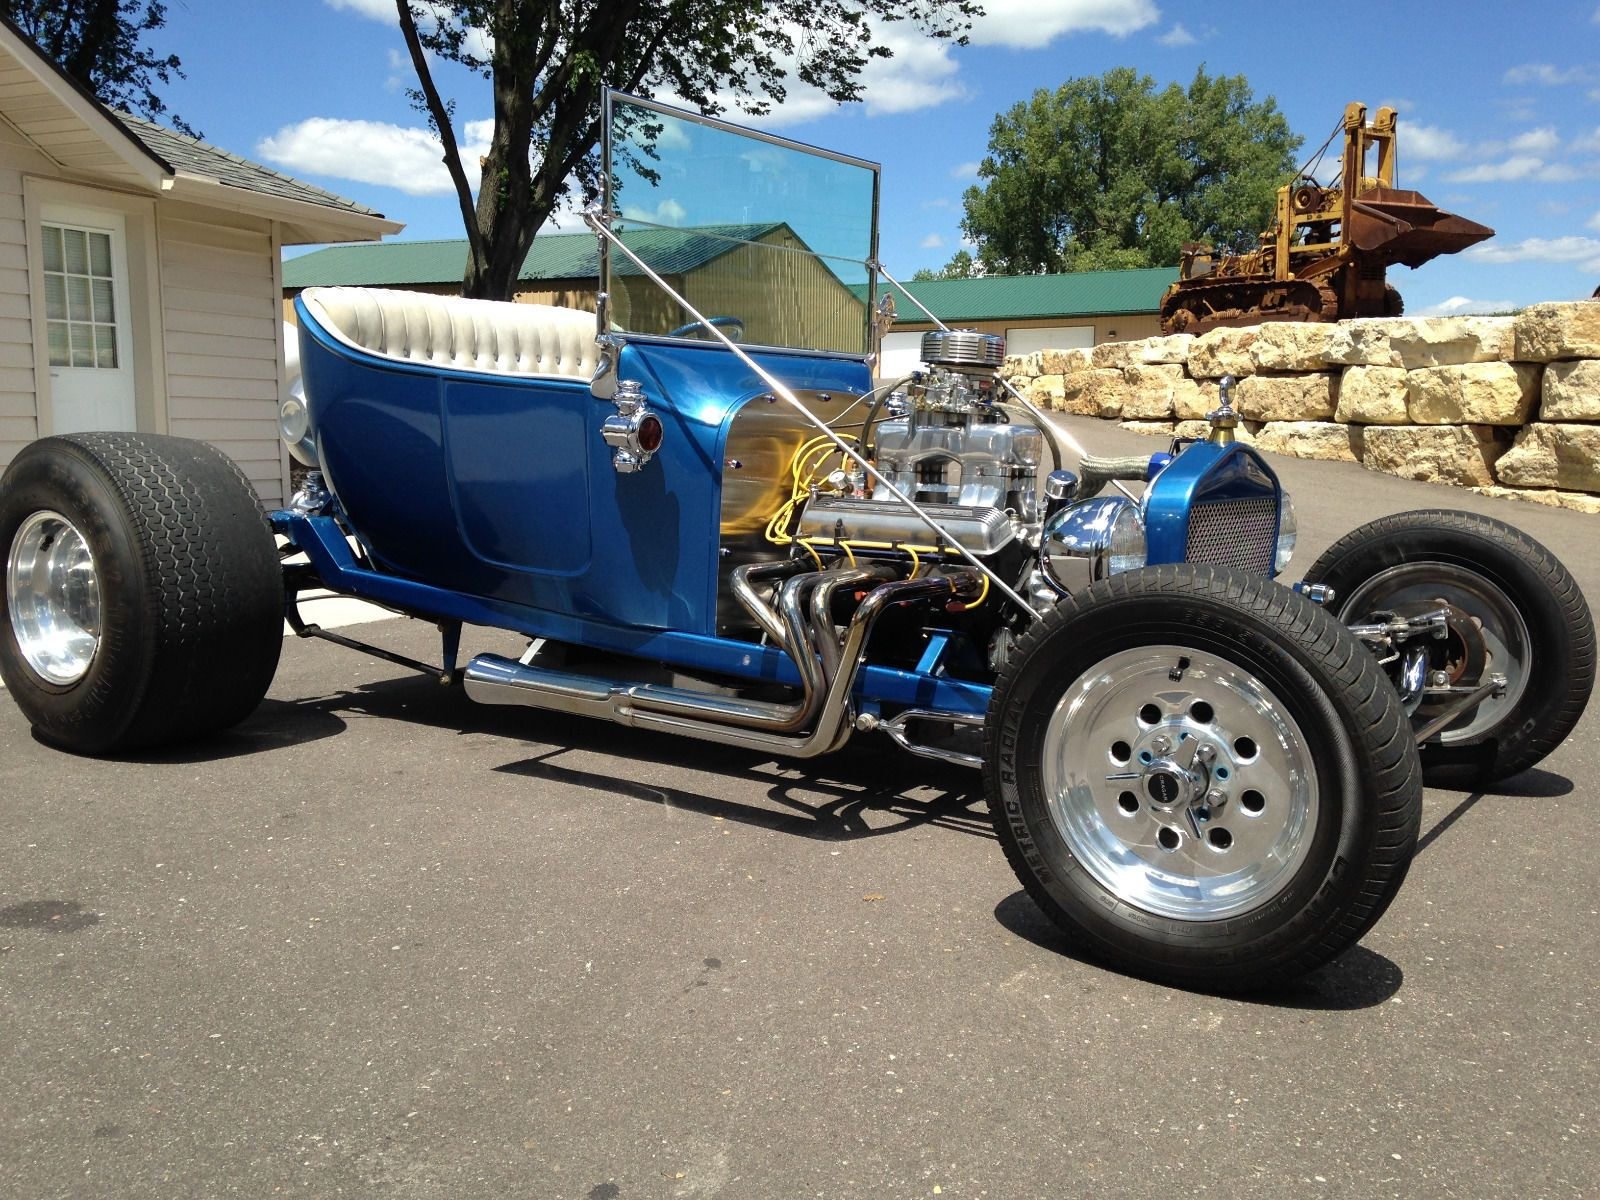 1923 Ford T Bucket Hot Rod Roadster | Hot rods for sale ...